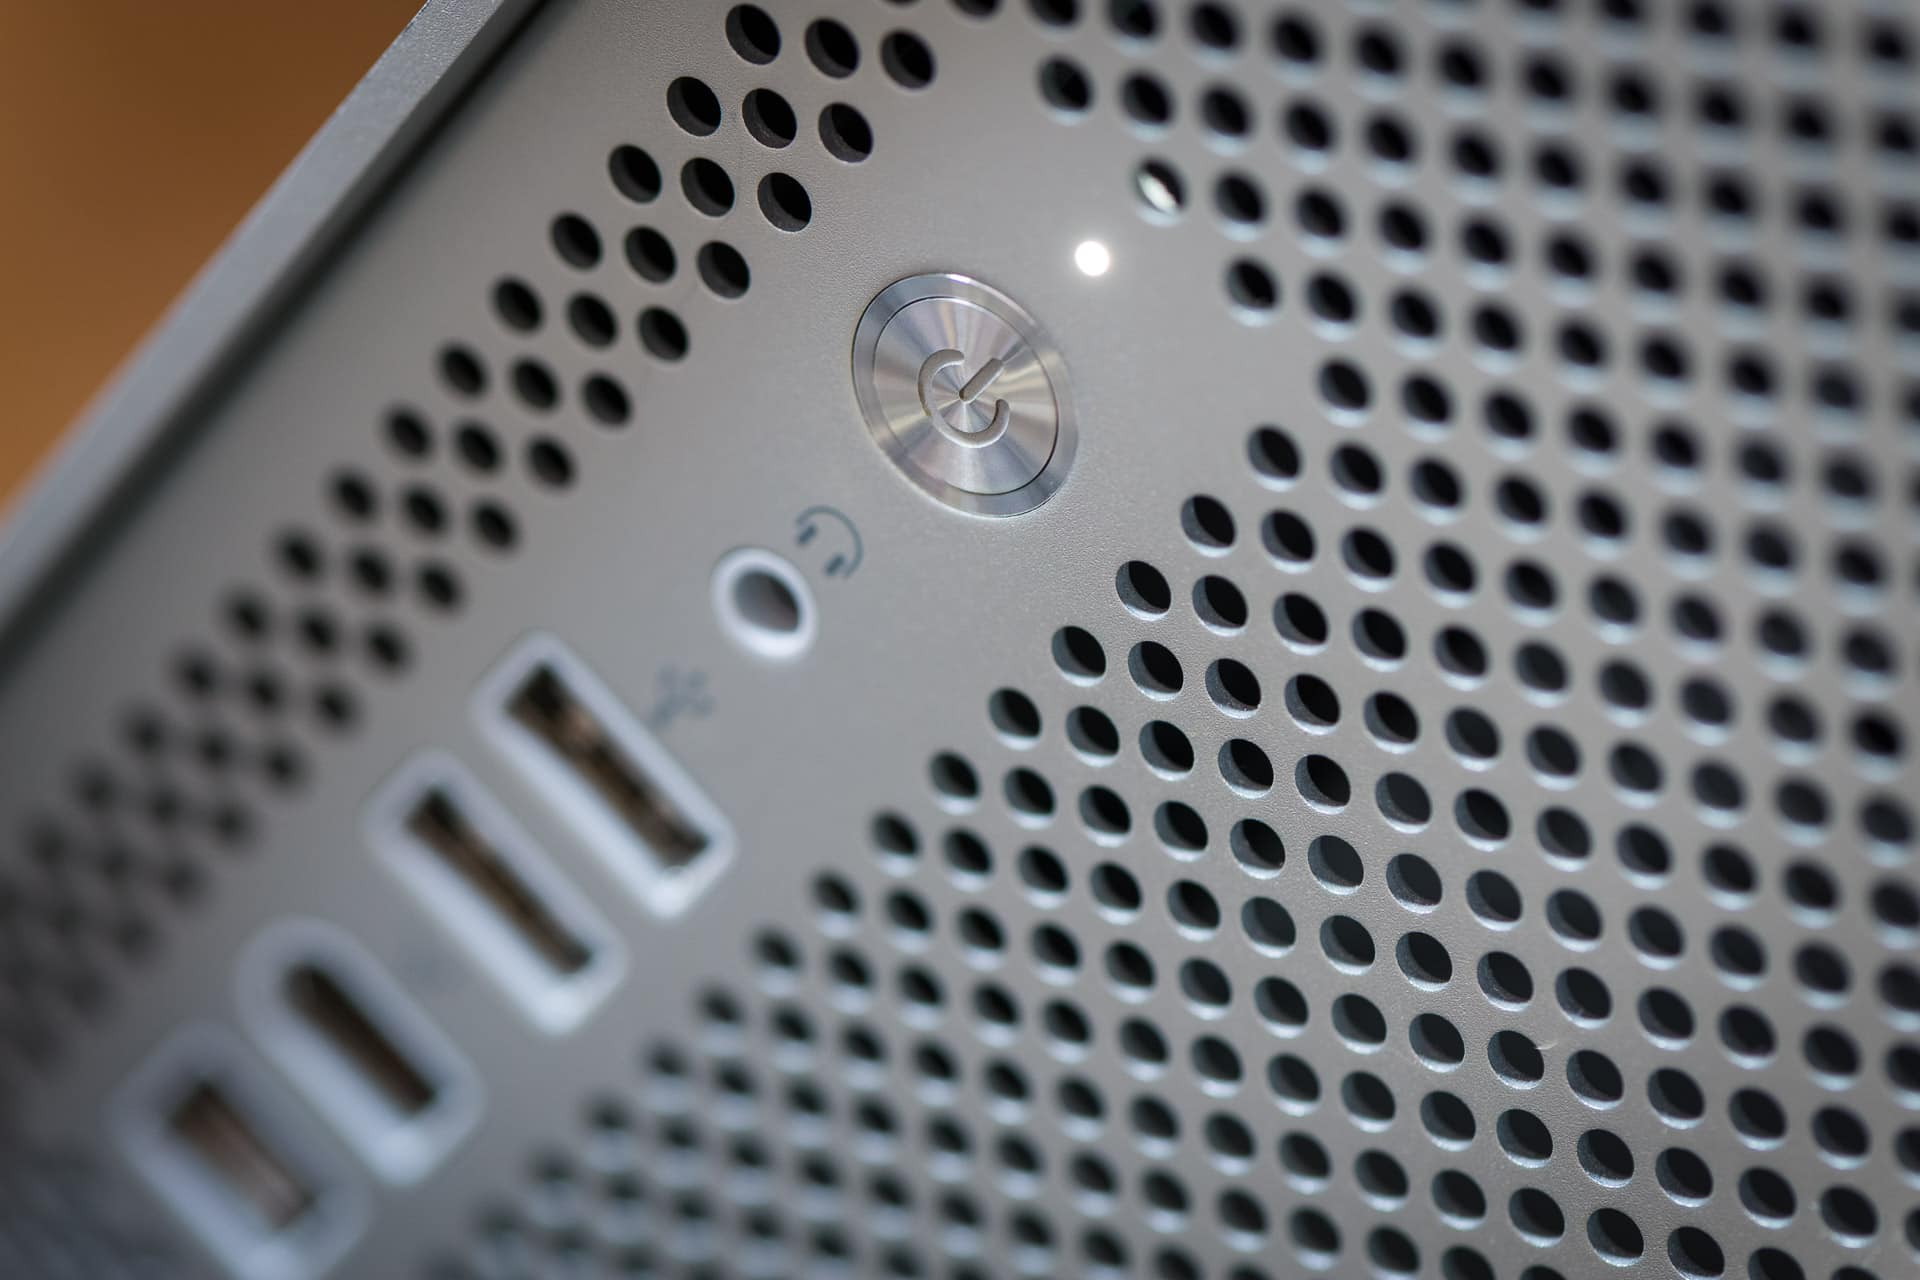 Mac Pro Early 2008